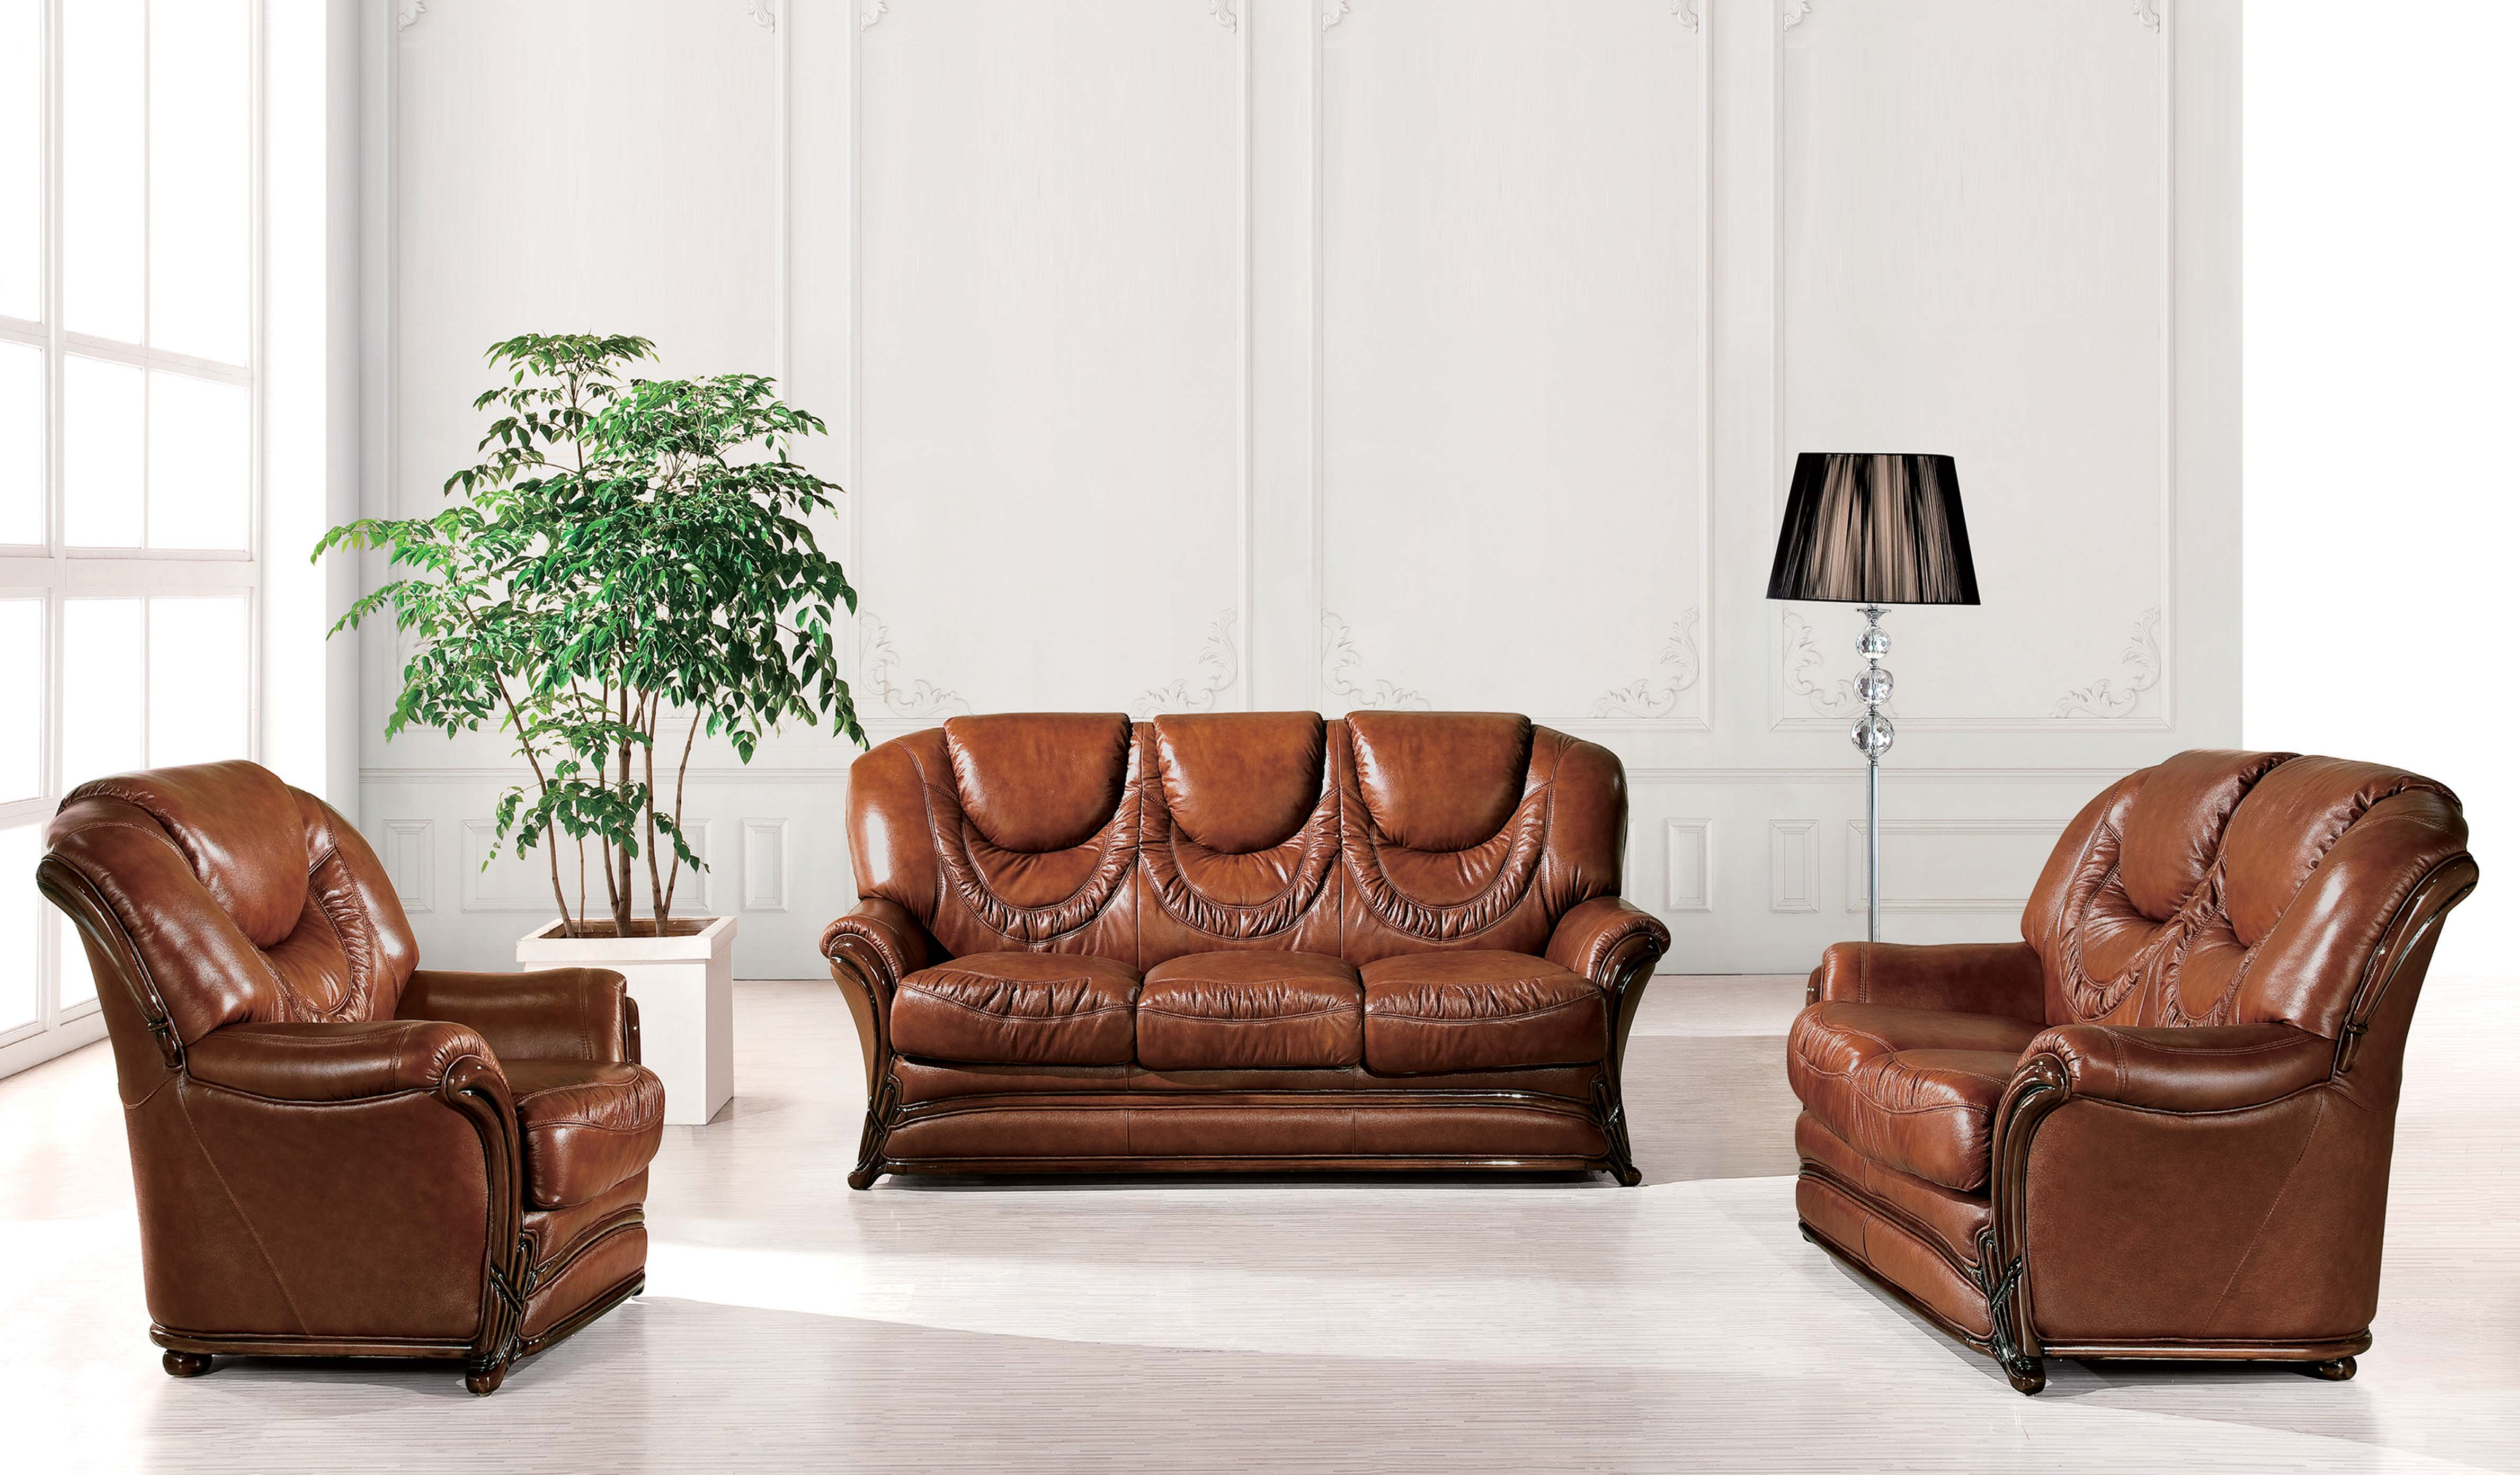 Living Room Furniture: 67 Full Leather, Sofas Loveseats And Chairs, Living Room